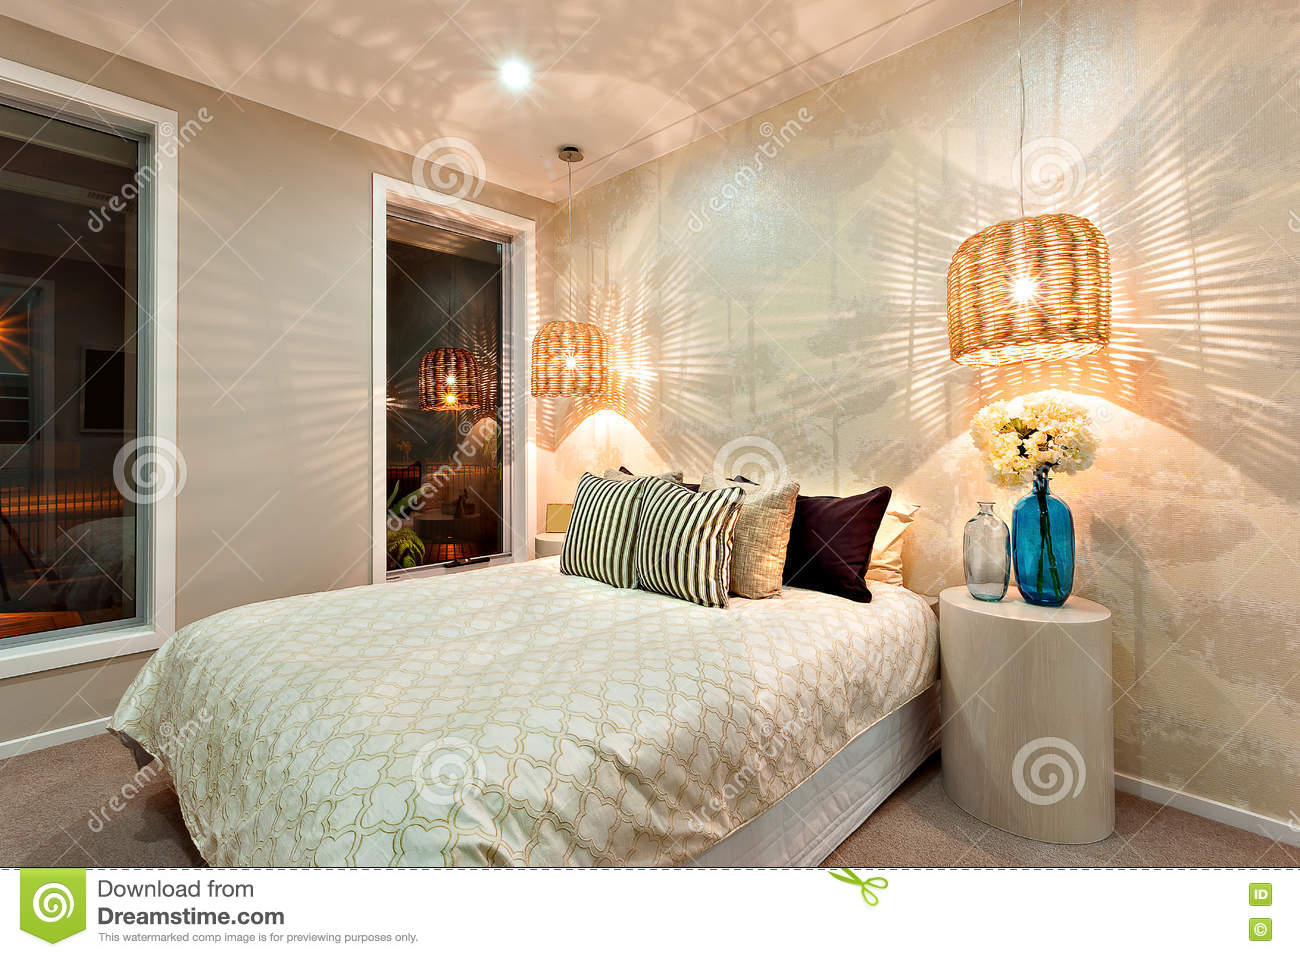 Side view of a luxurious bedroom with a bed